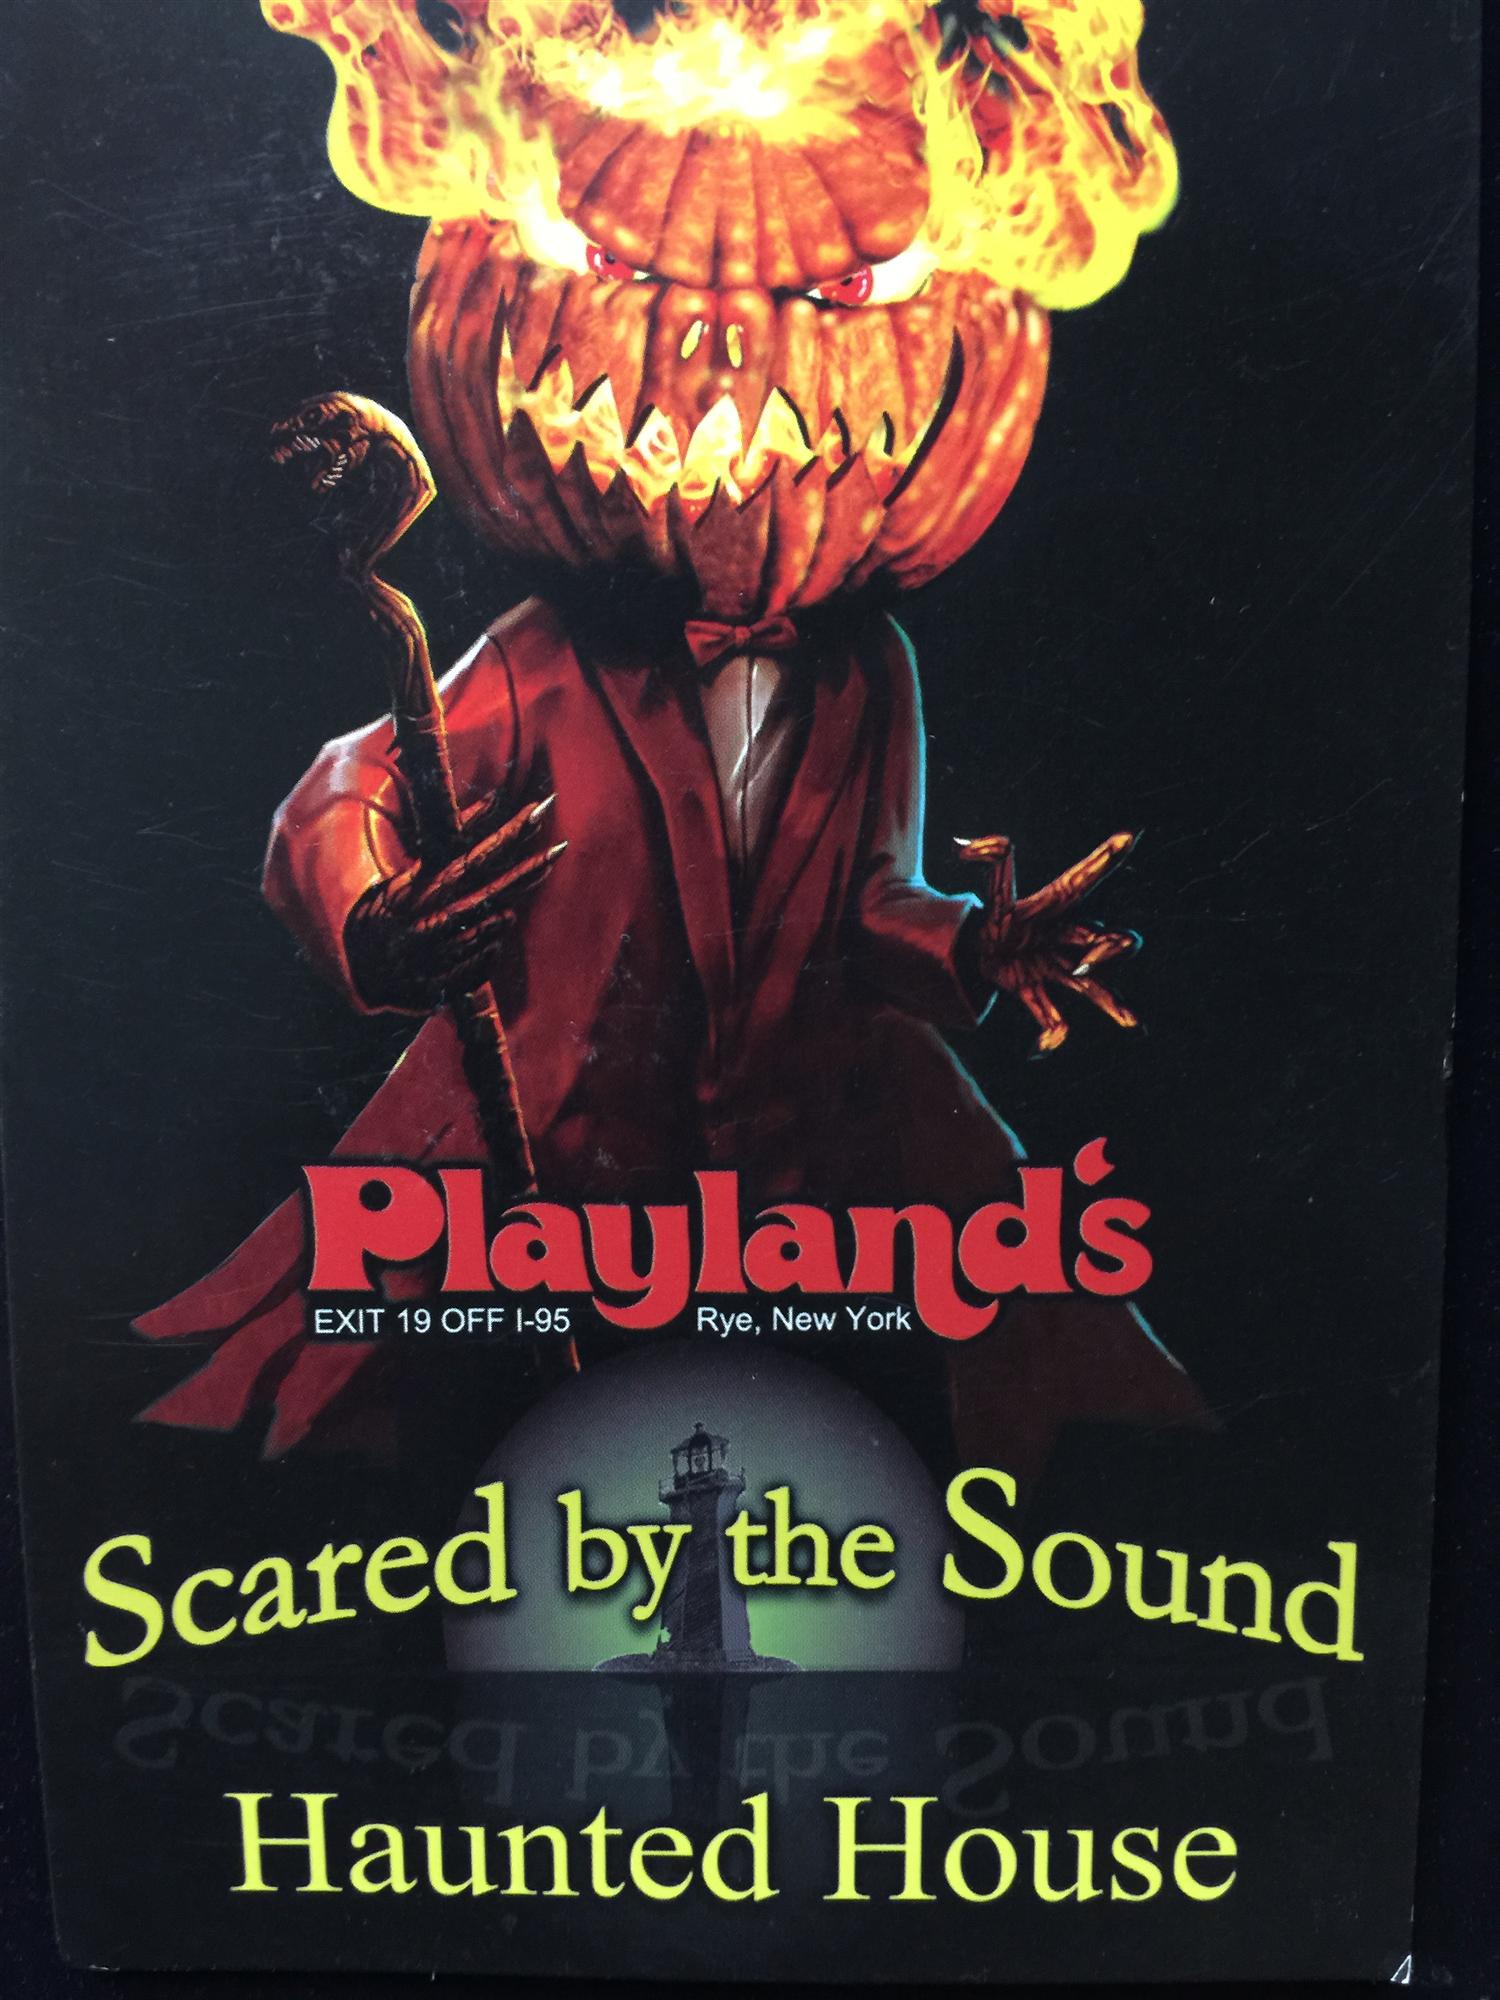 Scared by the Sound Haunted House 2018 Tickets in Rye, NY